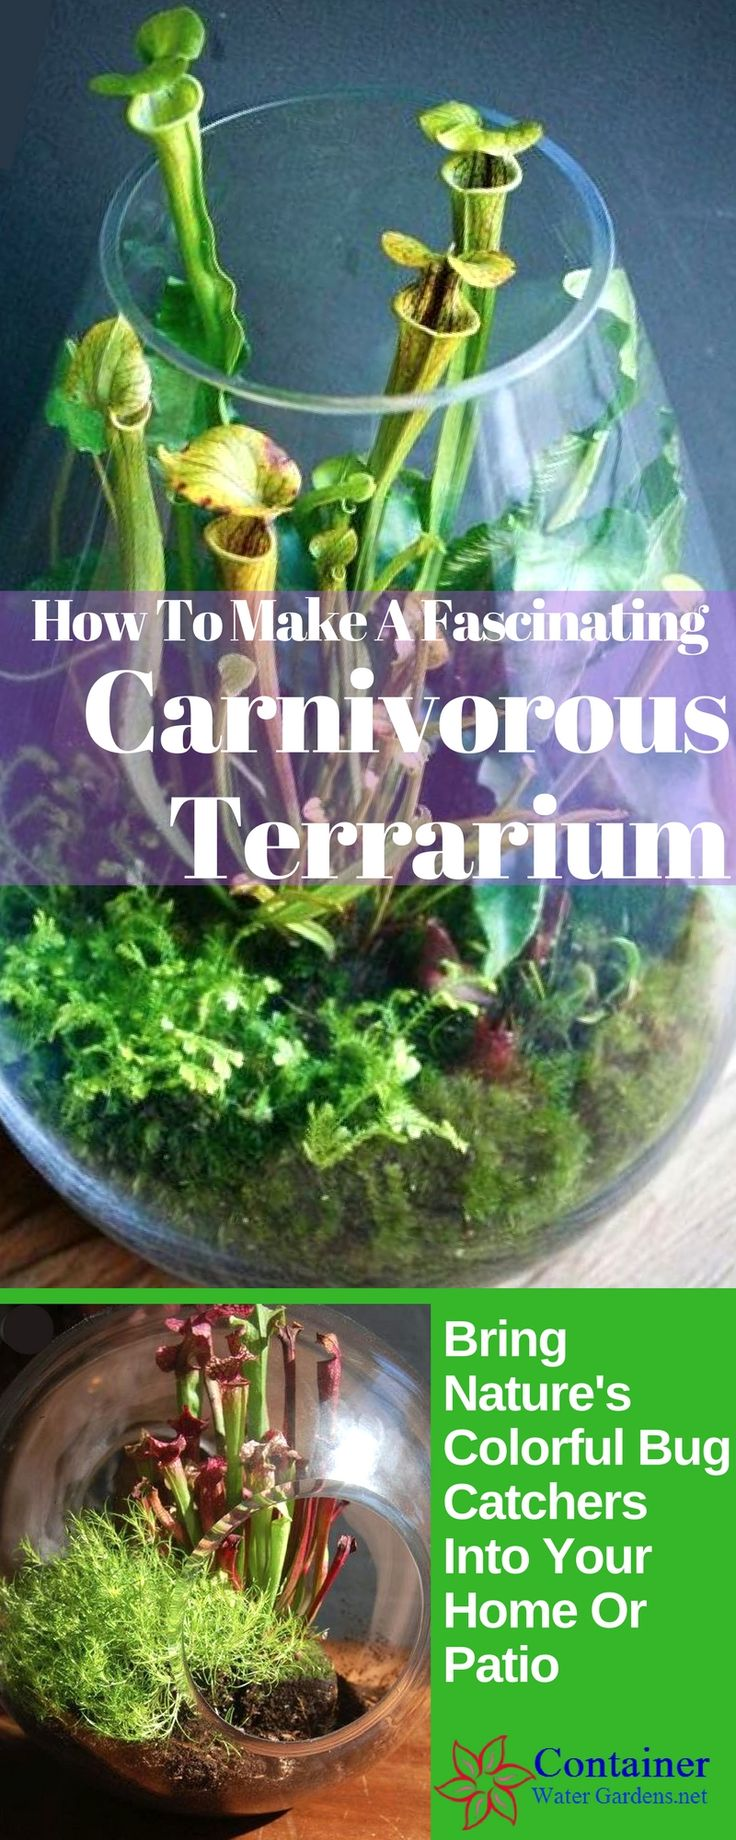 """Terrariums are pretty easy to create and care for, you may have made one in school as a science class project. Carnivorous plants will """"eat"""" flies, ants, and wasps when placed outdoors plus they come in many colorful shapes and sizes. Watching them catch bugs adds even more interest. Pitcher plants alone have a variety of beautiful colors... (click through to read more)"""